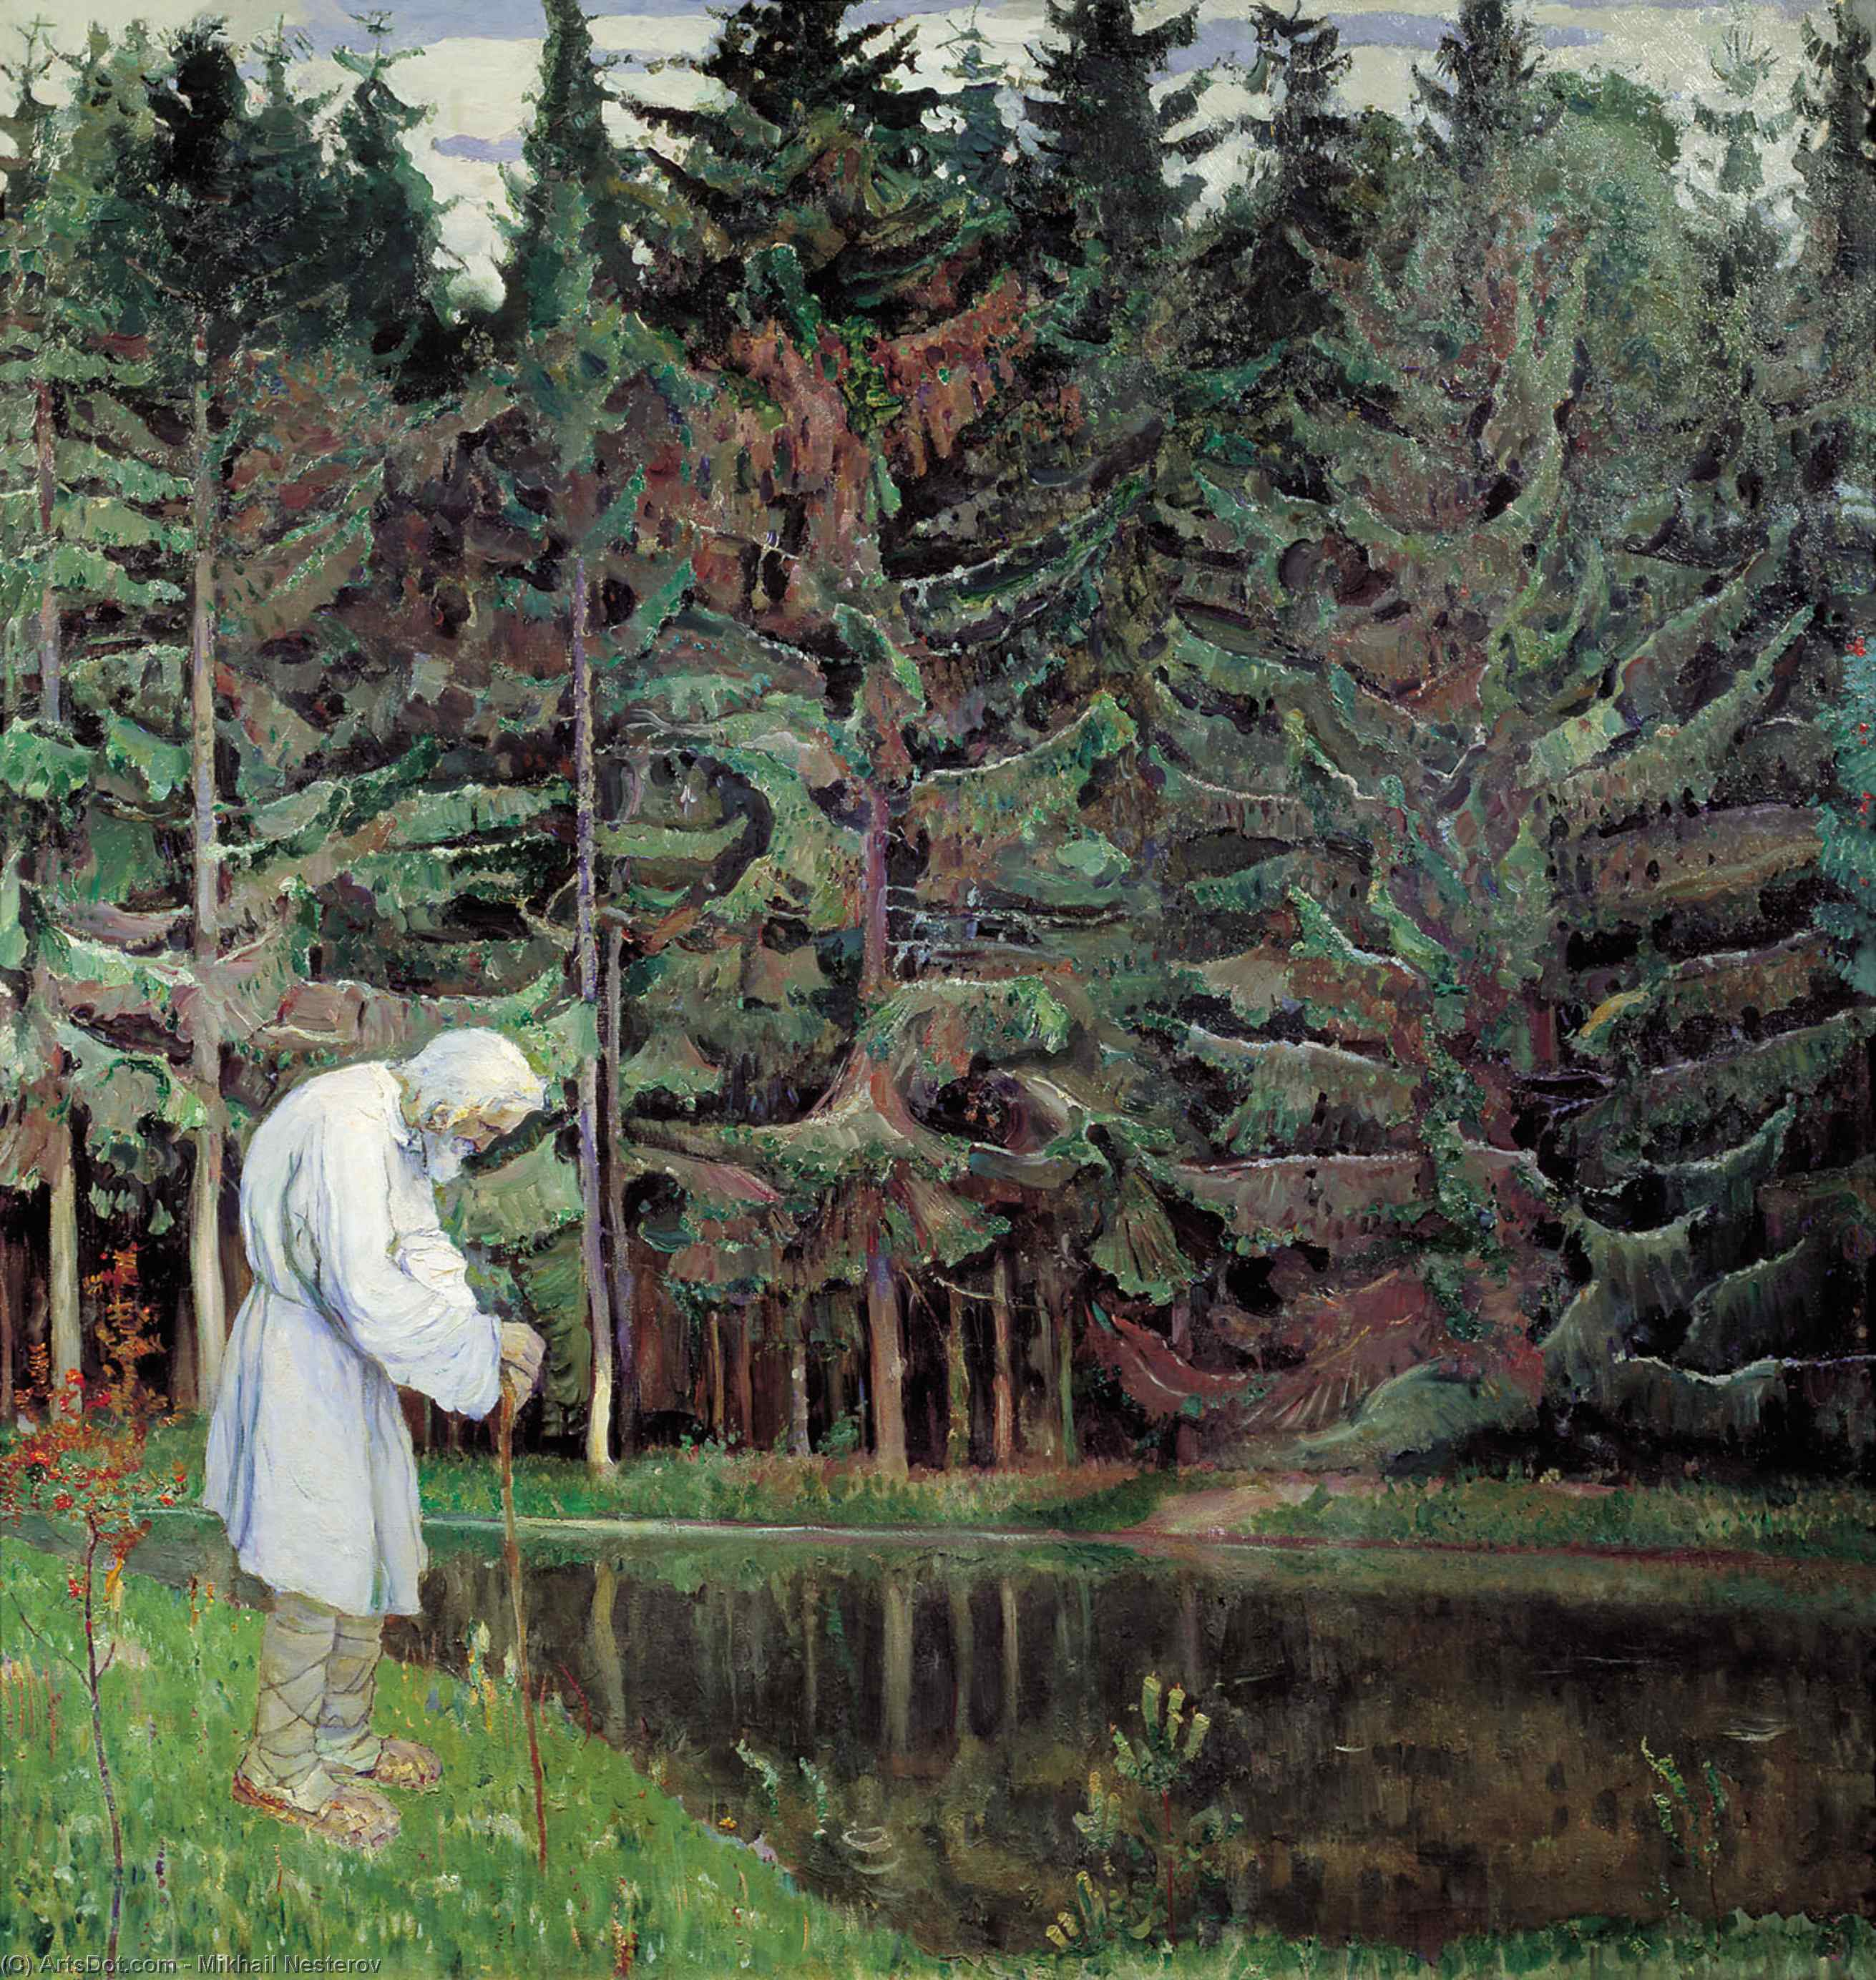 Elder (Abraham, the Servant of God), Oil On Canvas by Mikhail Nesterov (1862-1942, Russia)